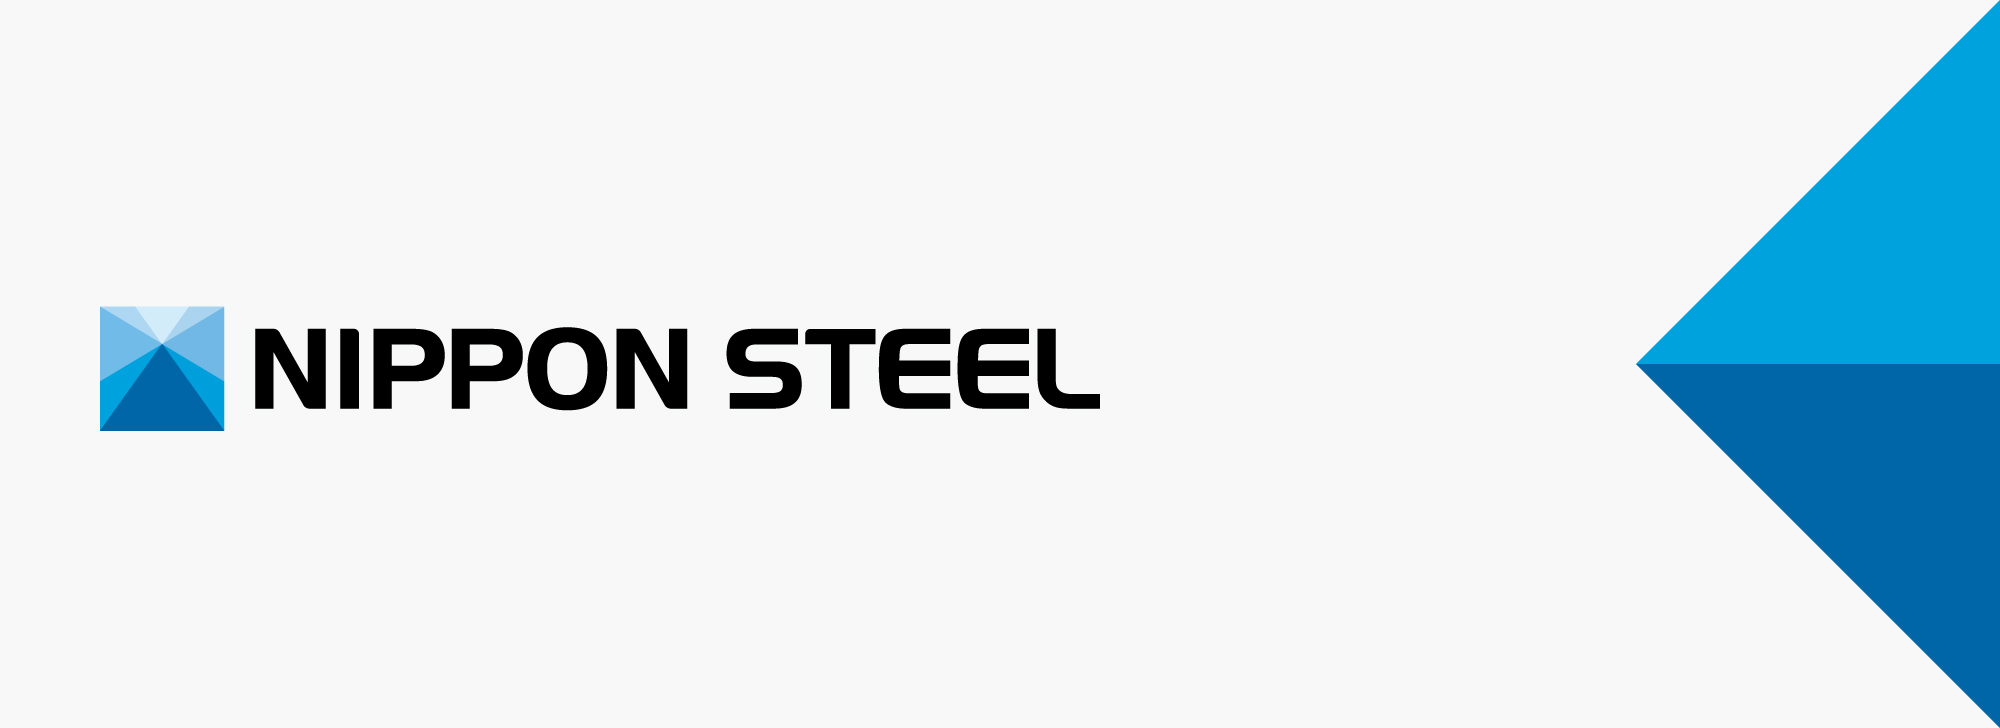 Products | NIPPON STEEL CORPORATION